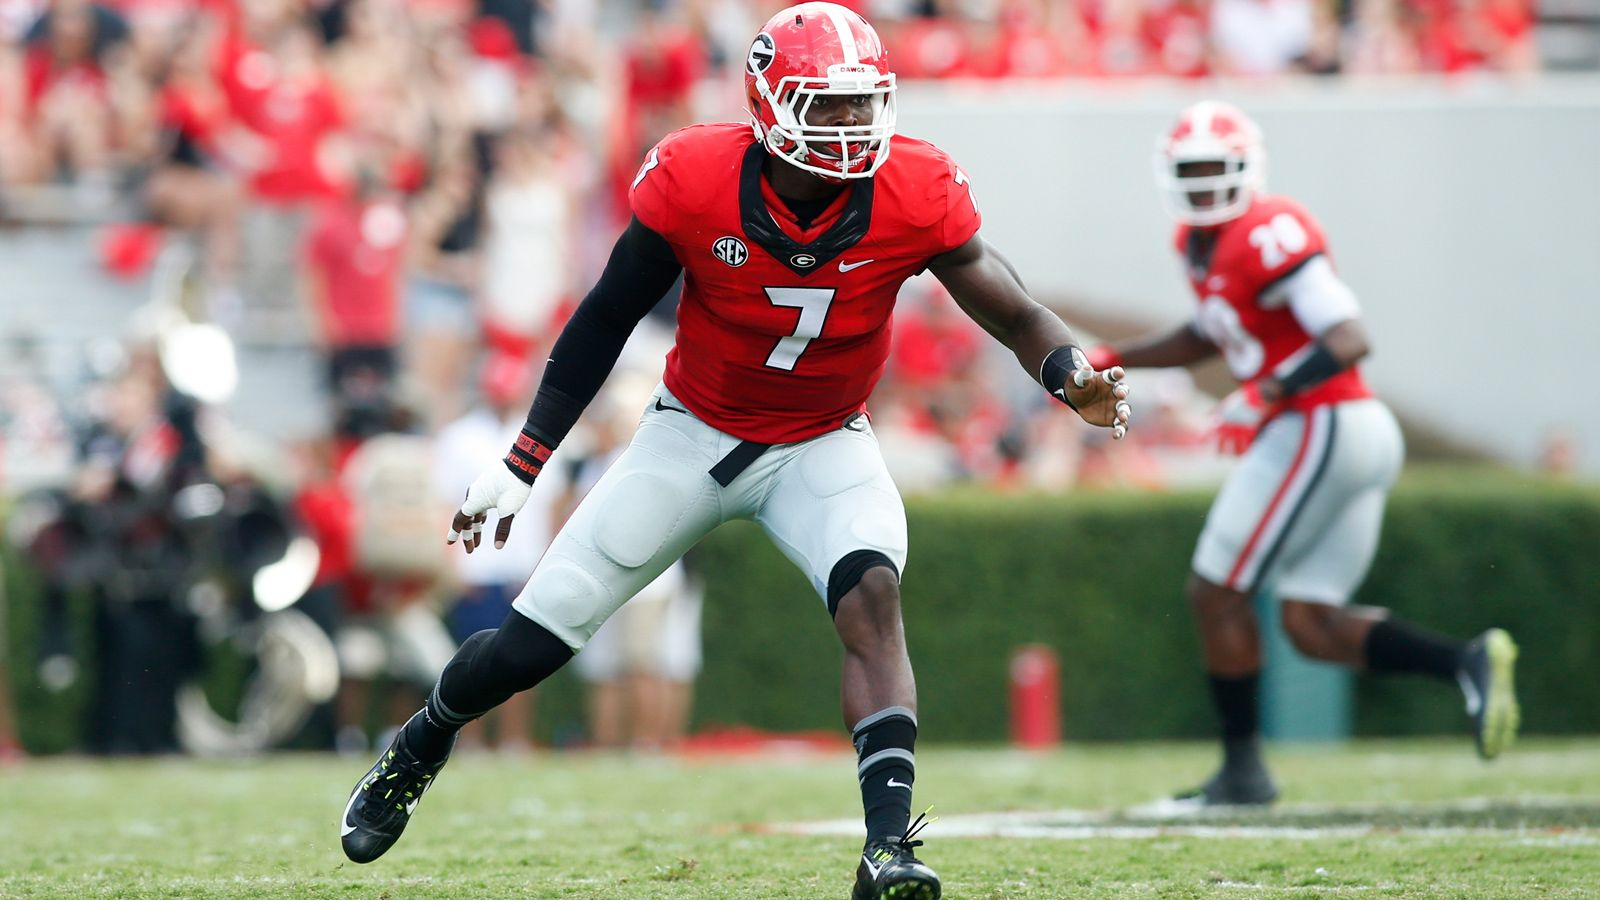 Eleven from SEC named to Butkus Award watch list